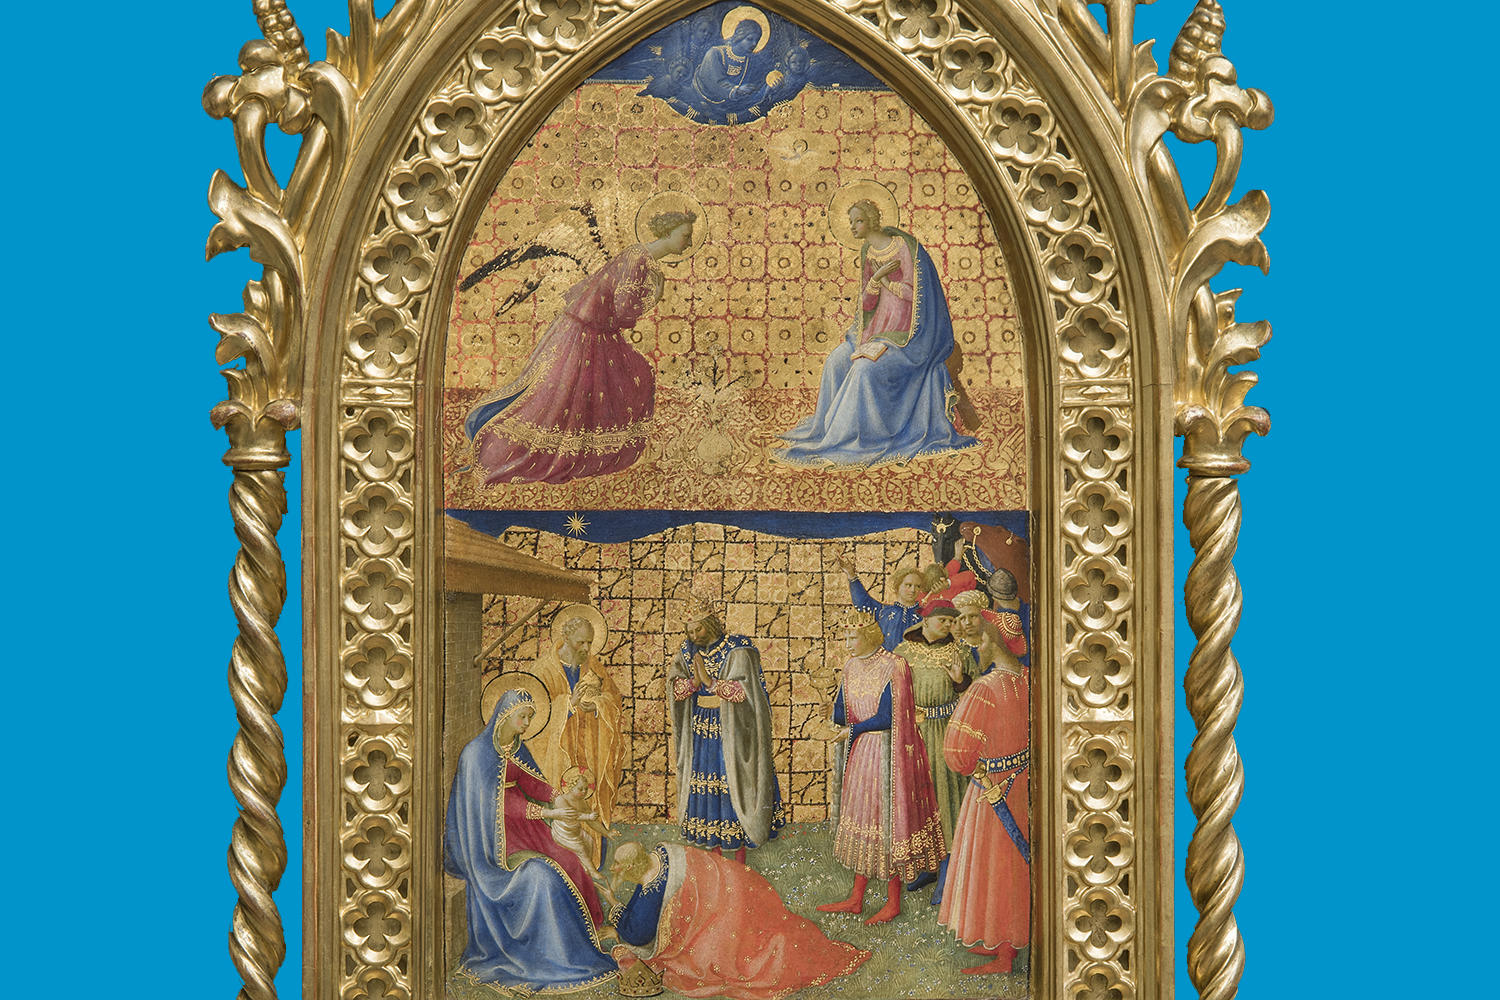 Fra Angelico (Italian, about 1400 - 1455), The Annunciation and Adoration of the Magi, 1424-1434. Tempera with oil glazes and gold on panel, 87 x 50.7 cm (34 1/4 x 19 15/16 in.) Museo di San Marco, Florence – Polo Museale della Toscana